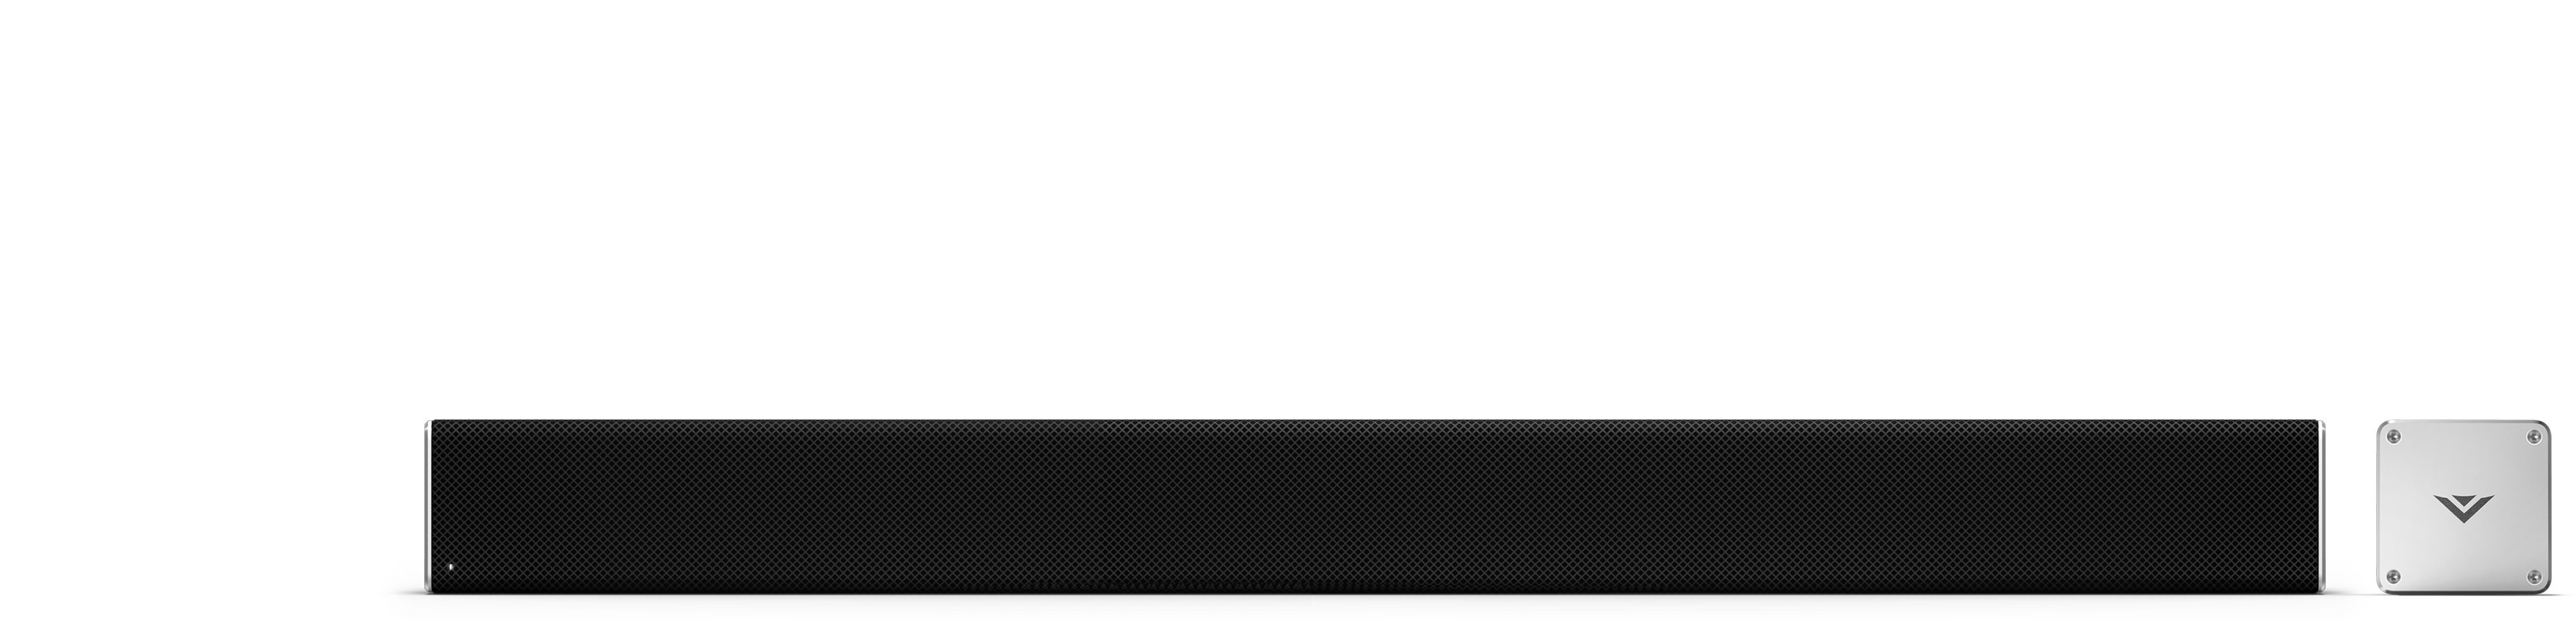 Right half and end caps of sound bar